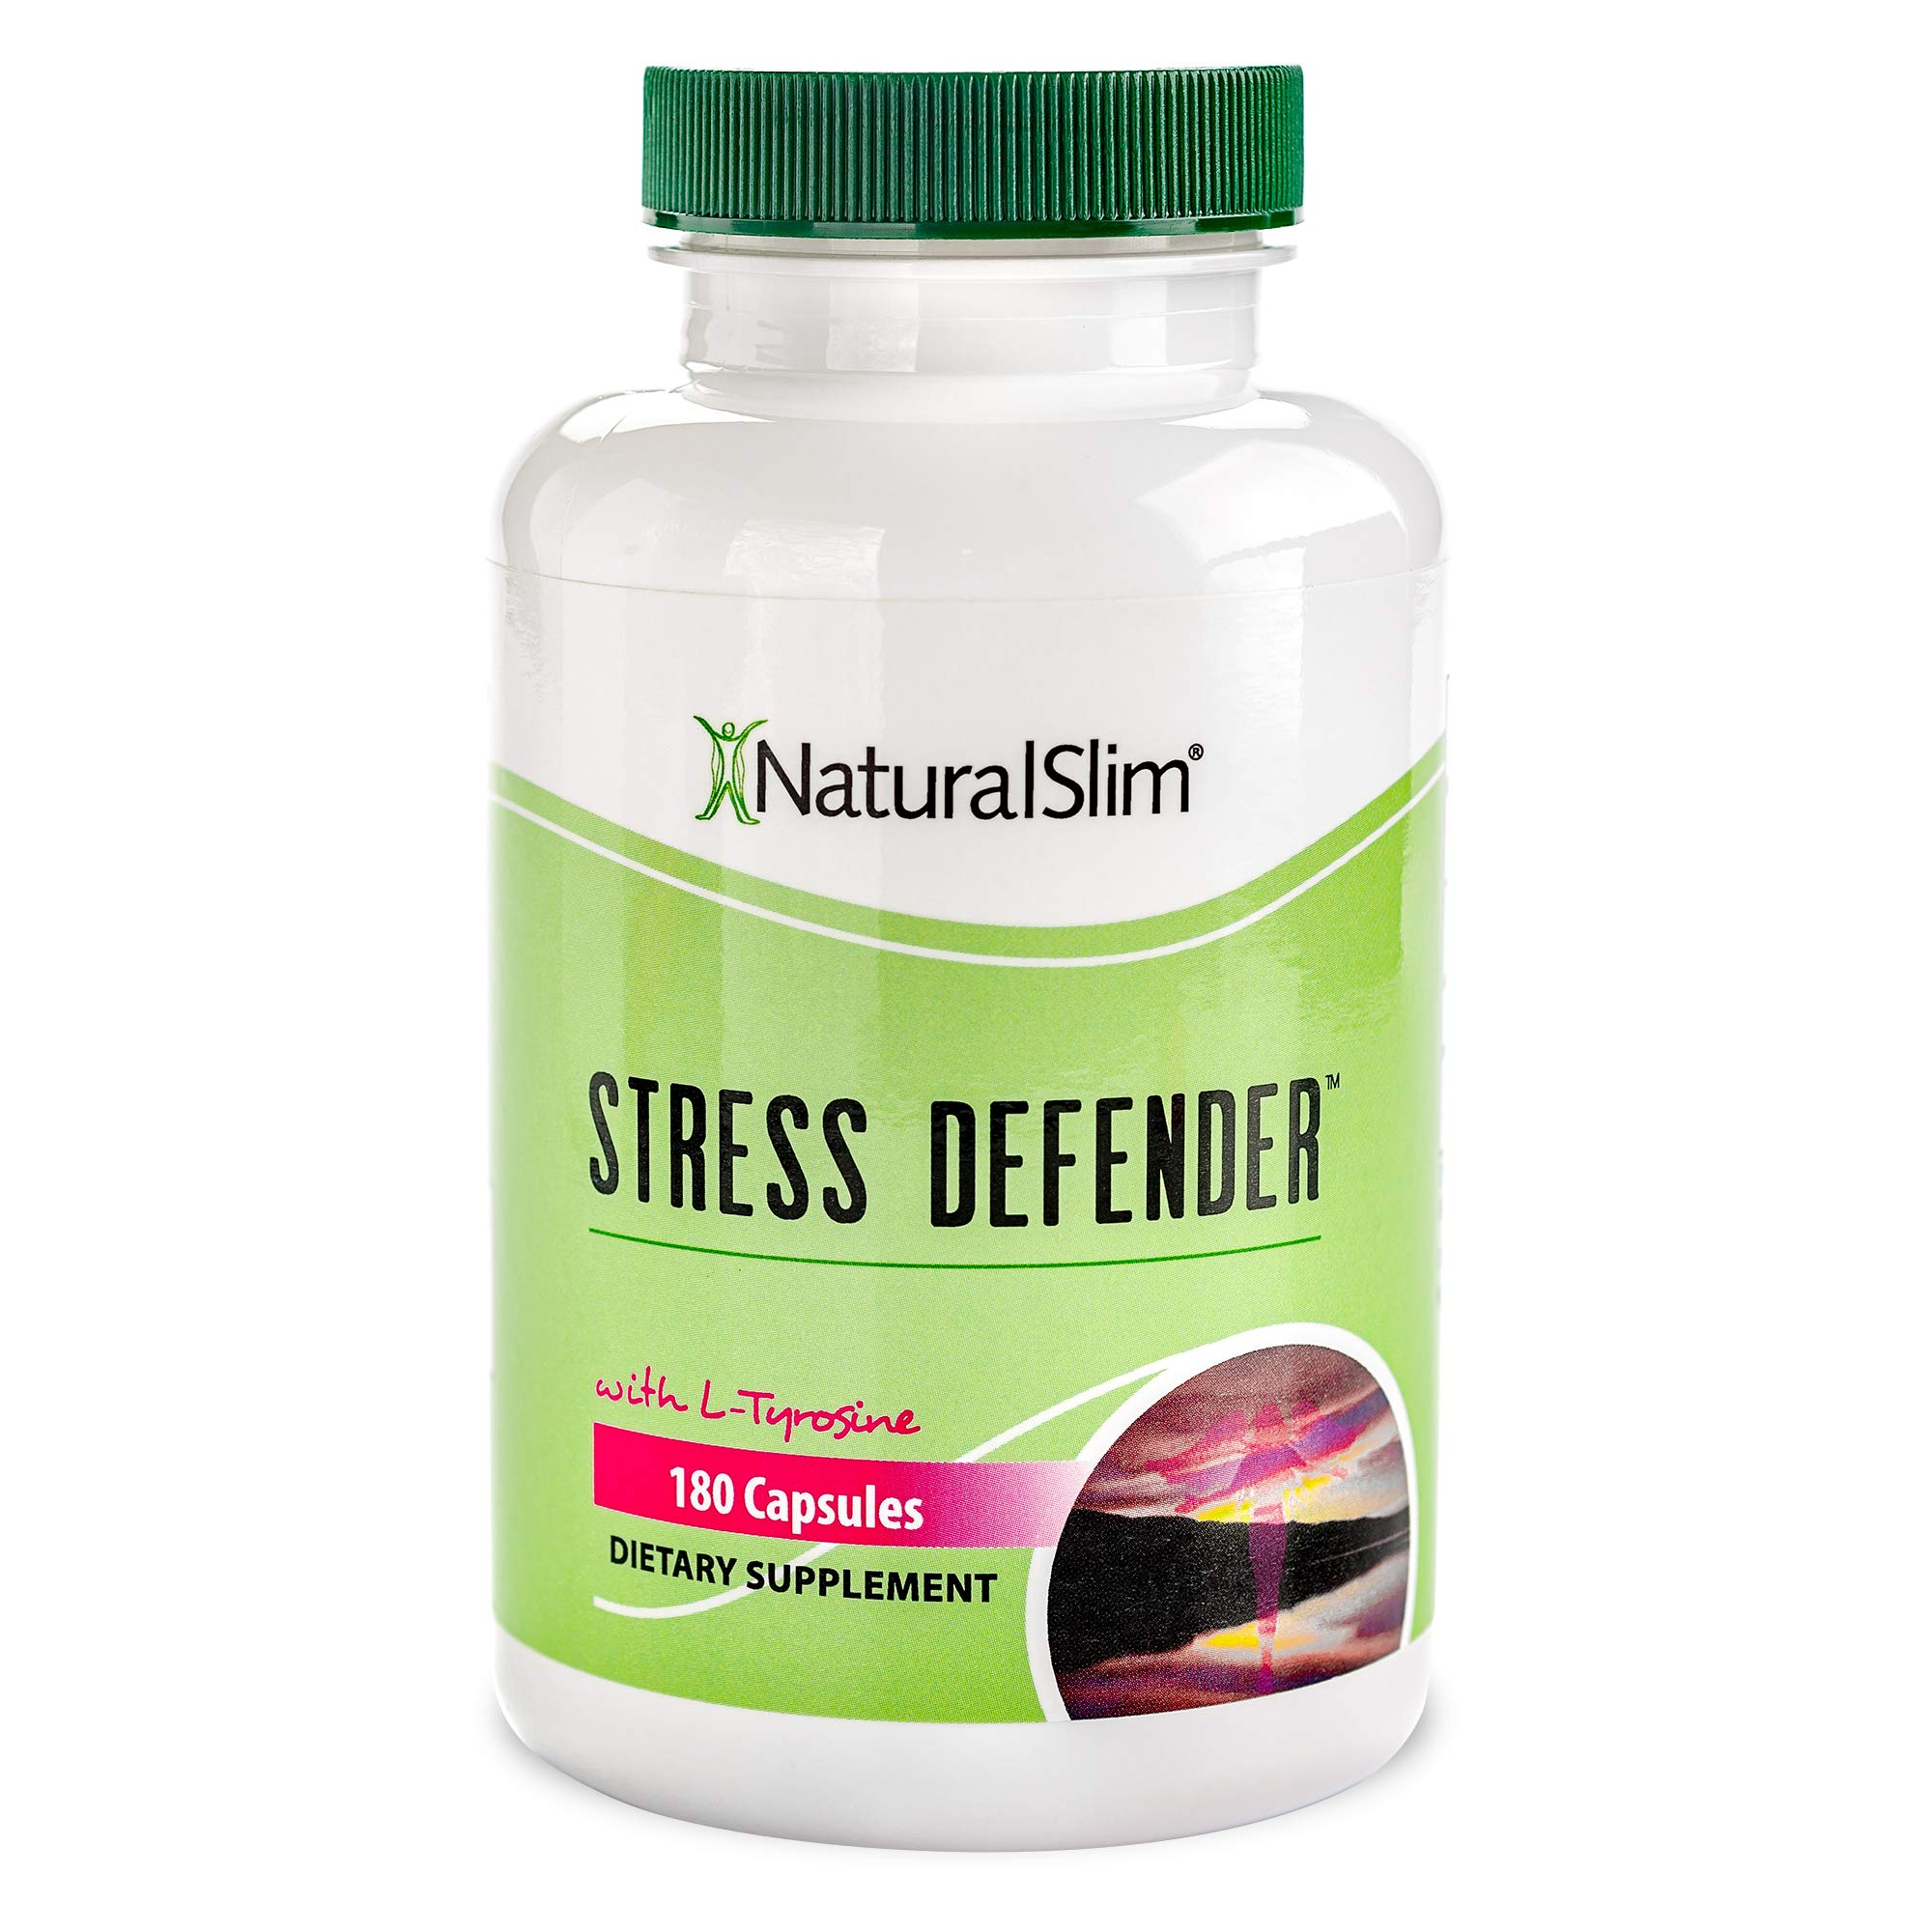 NaturalSlim Anti-Stress Supplement - Healthy Stress Response Support & Anxiety Relief - Help Calm the Body & Mind, Boost Mood, Increase Energy, & Improve Sleep - 180 Capsules